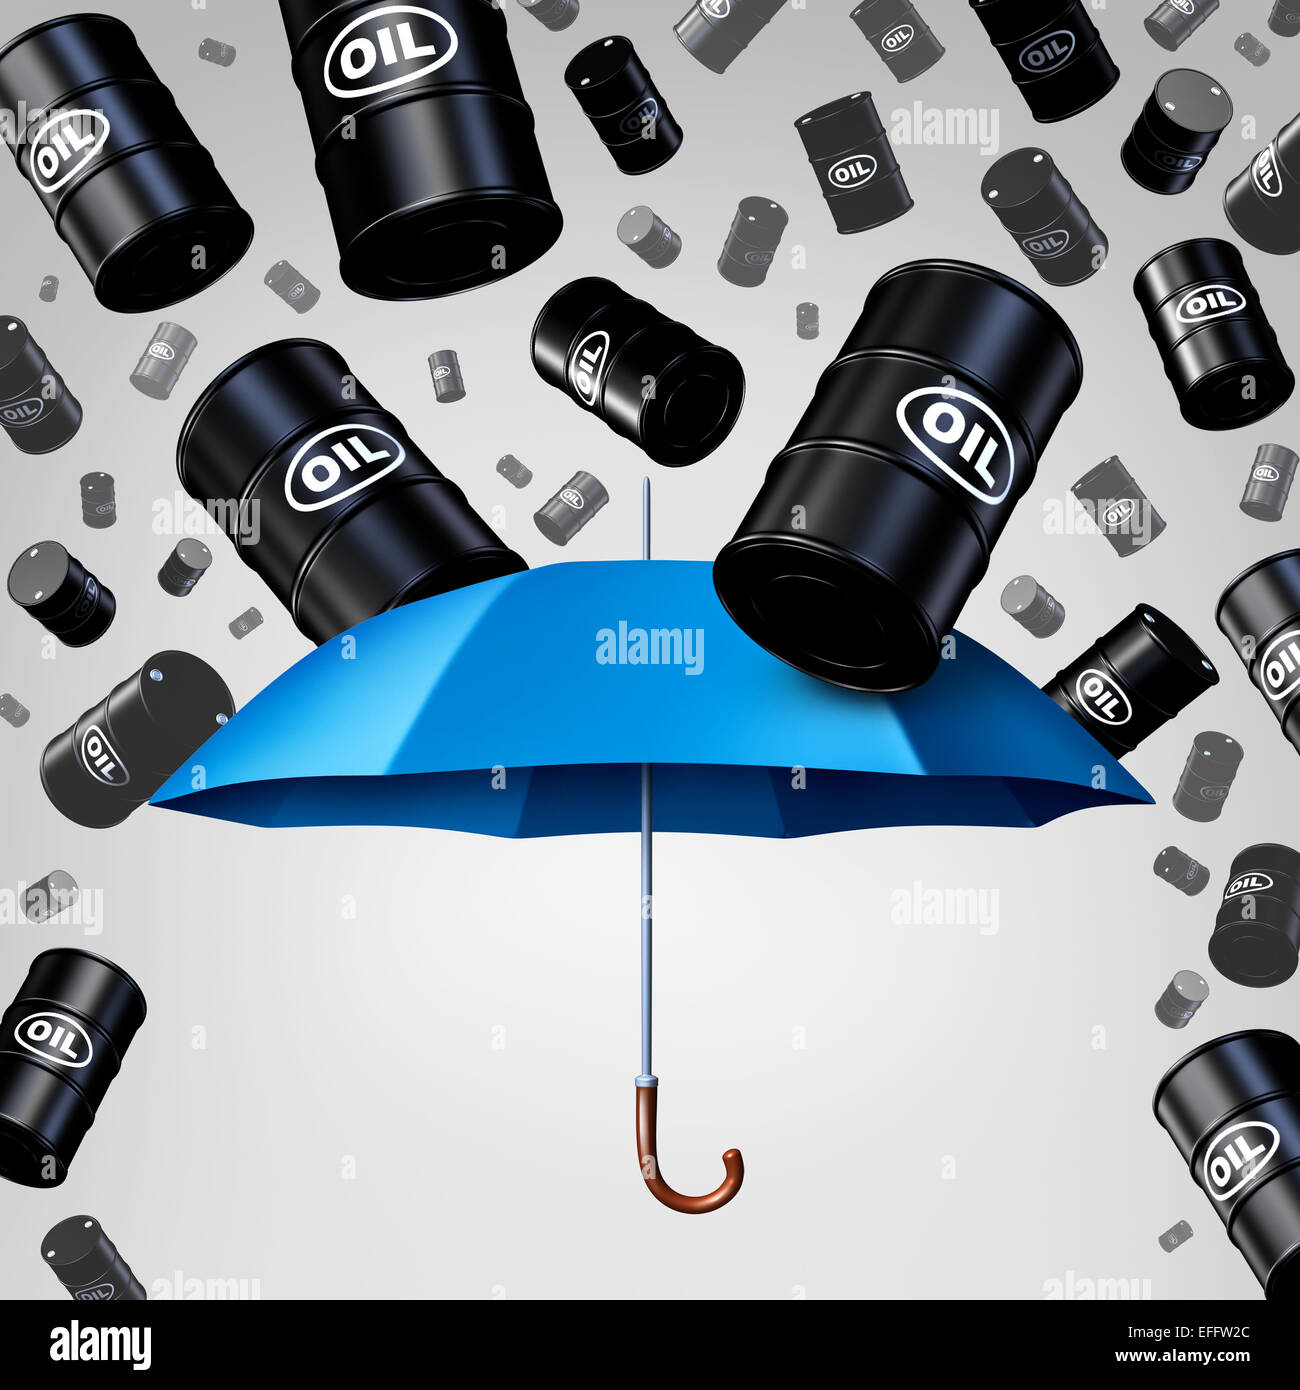 Falling oil protection concept as a group of crude petroleum barrels raining down with a blue umbrella as a security - Stock Image